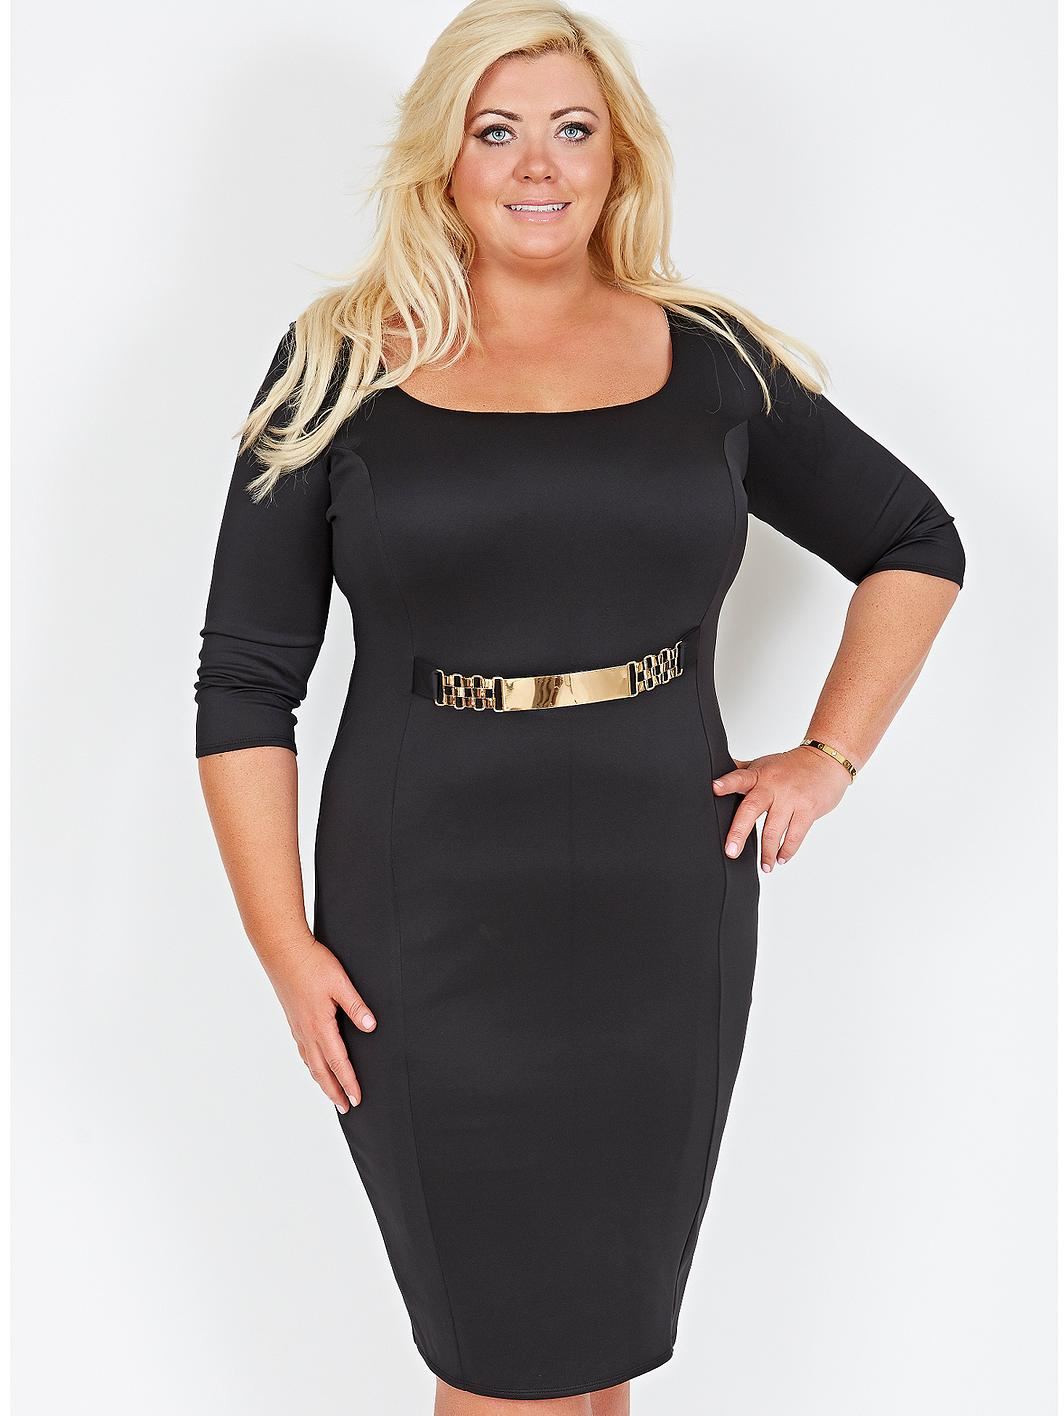 gemma-collins-corsica-belted-dress-available-in-sizes-16-24.jpg